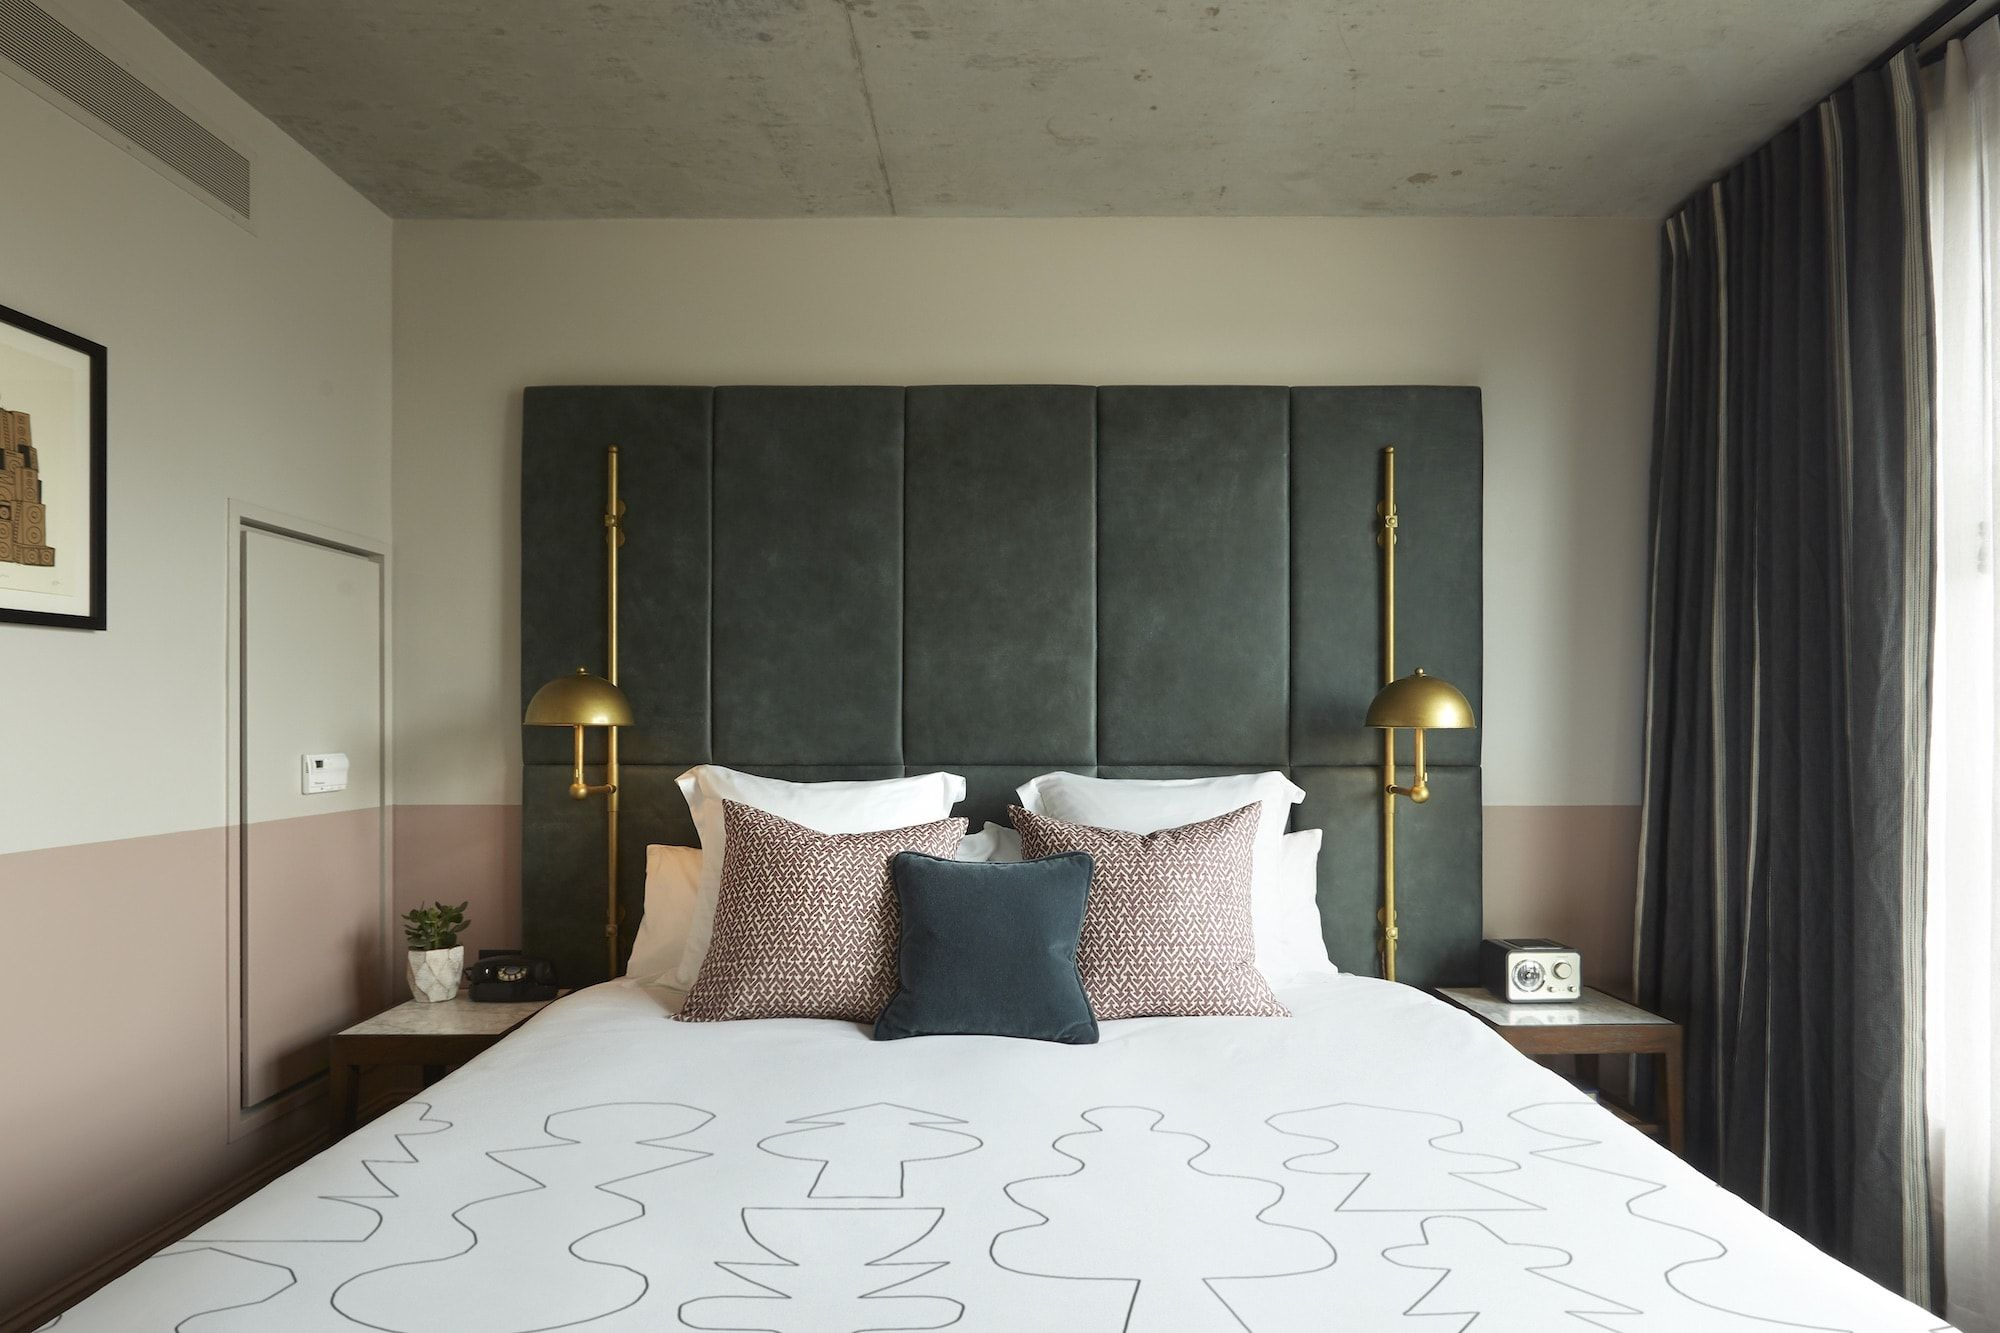 Hotels Are Taking Try Before You Buy To The Next Level Boutique Hotel Room Hotel Hoxton Hotel Room Design